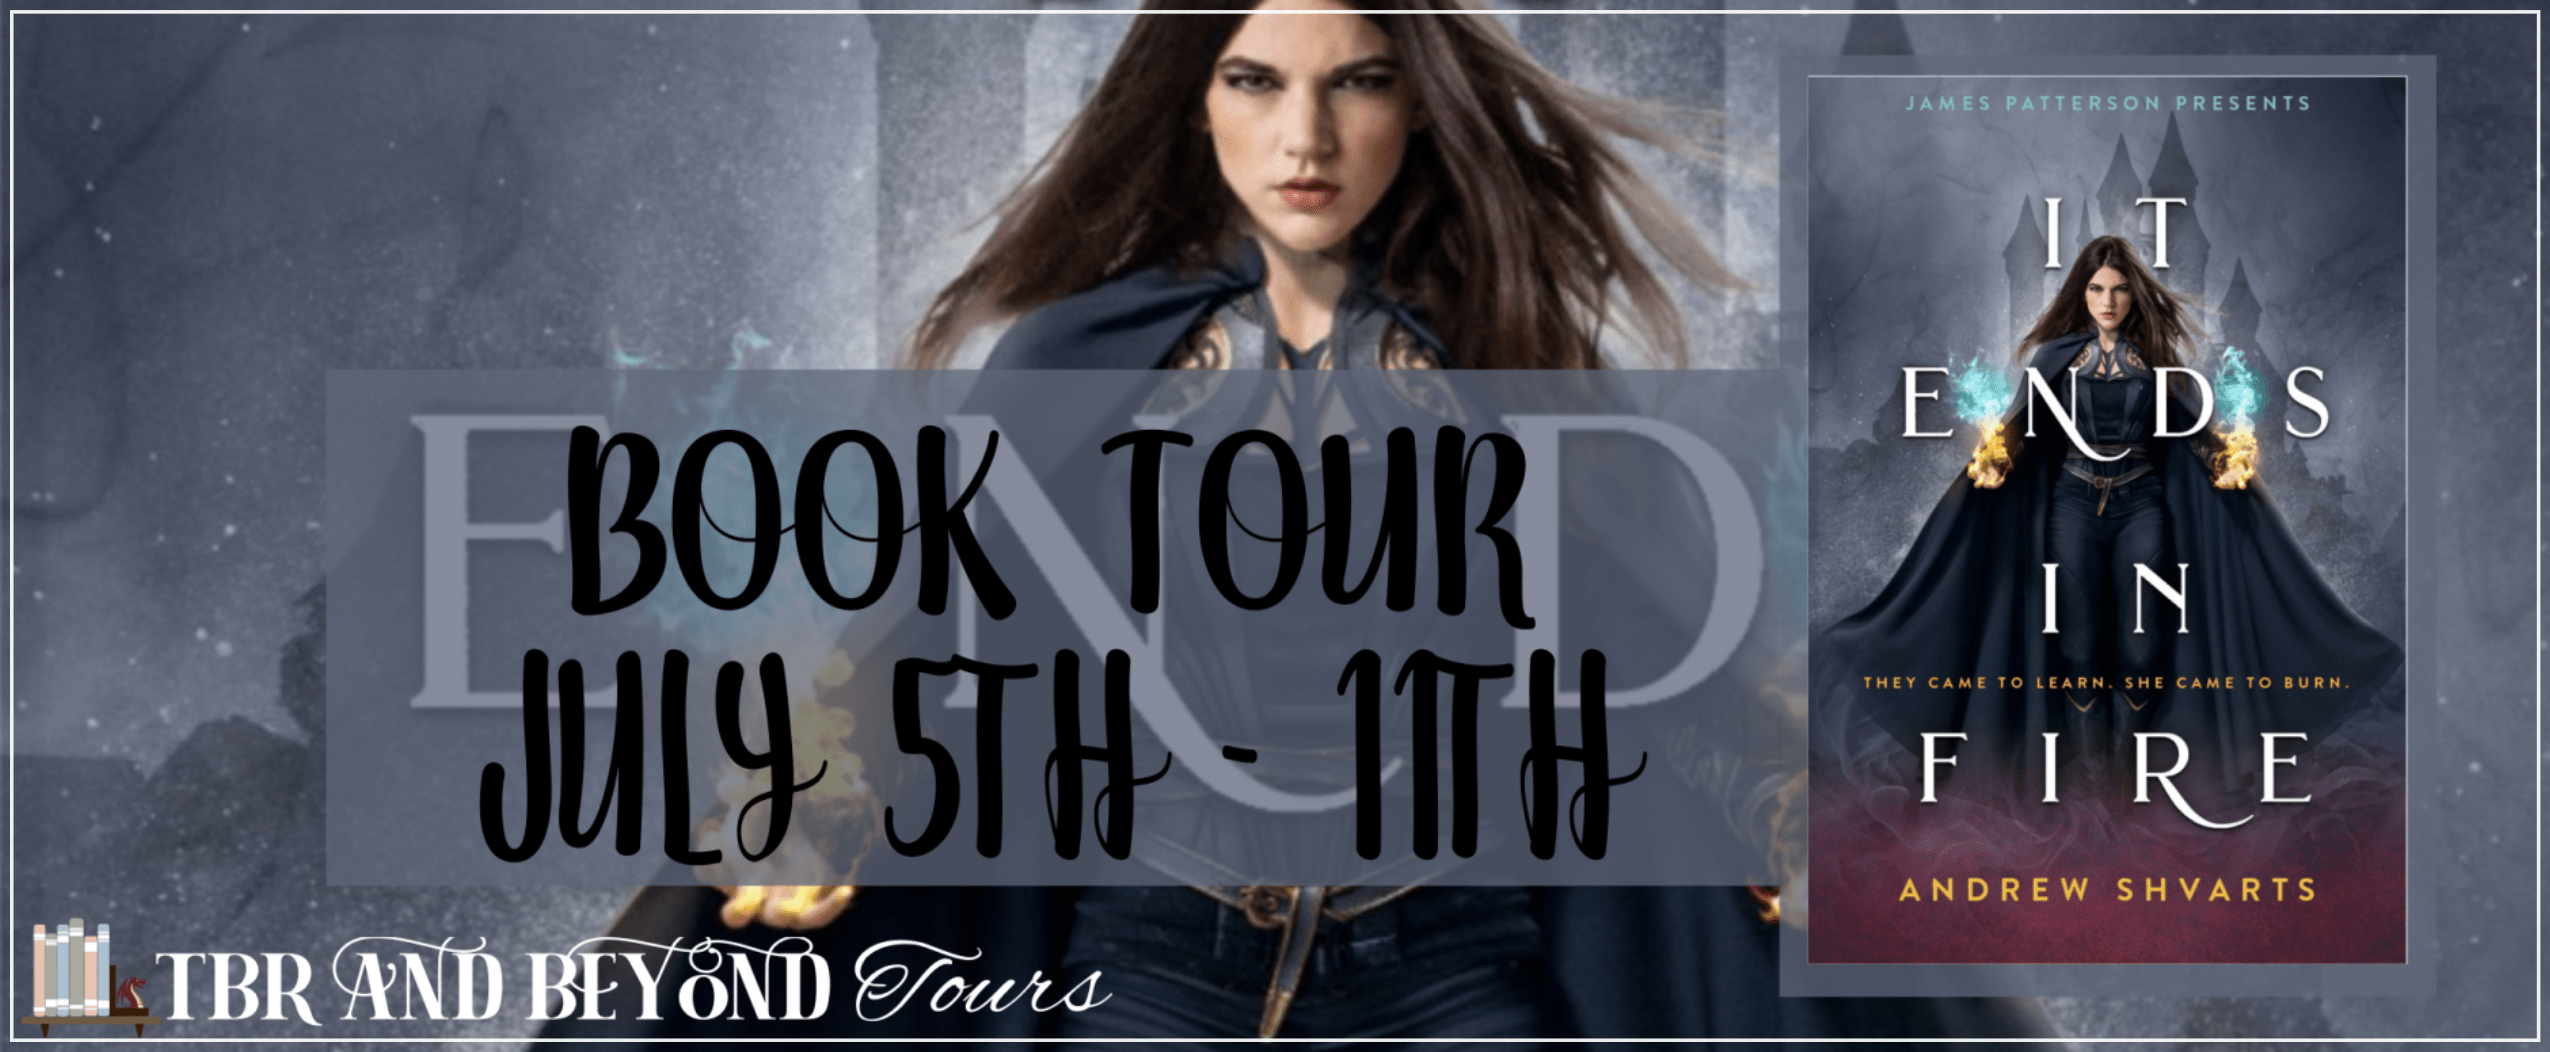 Blog Tour: It Ends in Fire by Andrew Shvarts (Interview!)